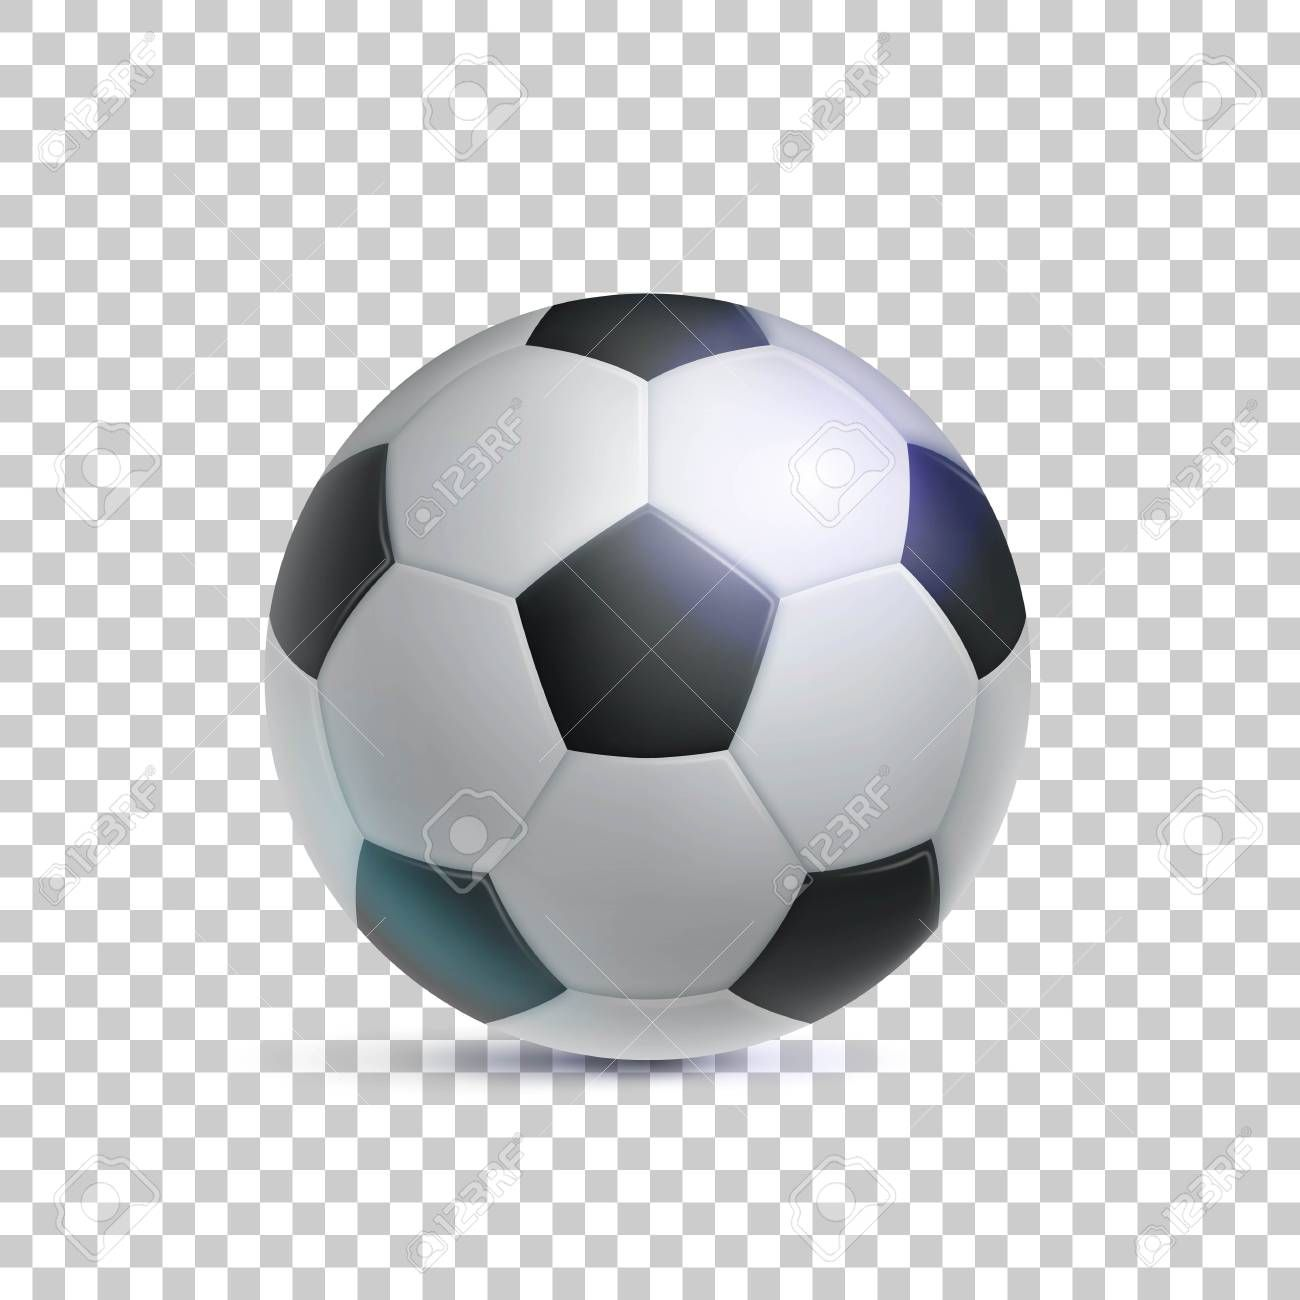 Classic Soccer Ball Realistic Transparent Background Affiliate Ball Soccer Classic Background Transpar In 2020 Transparent Background Soccer Ball Soccer